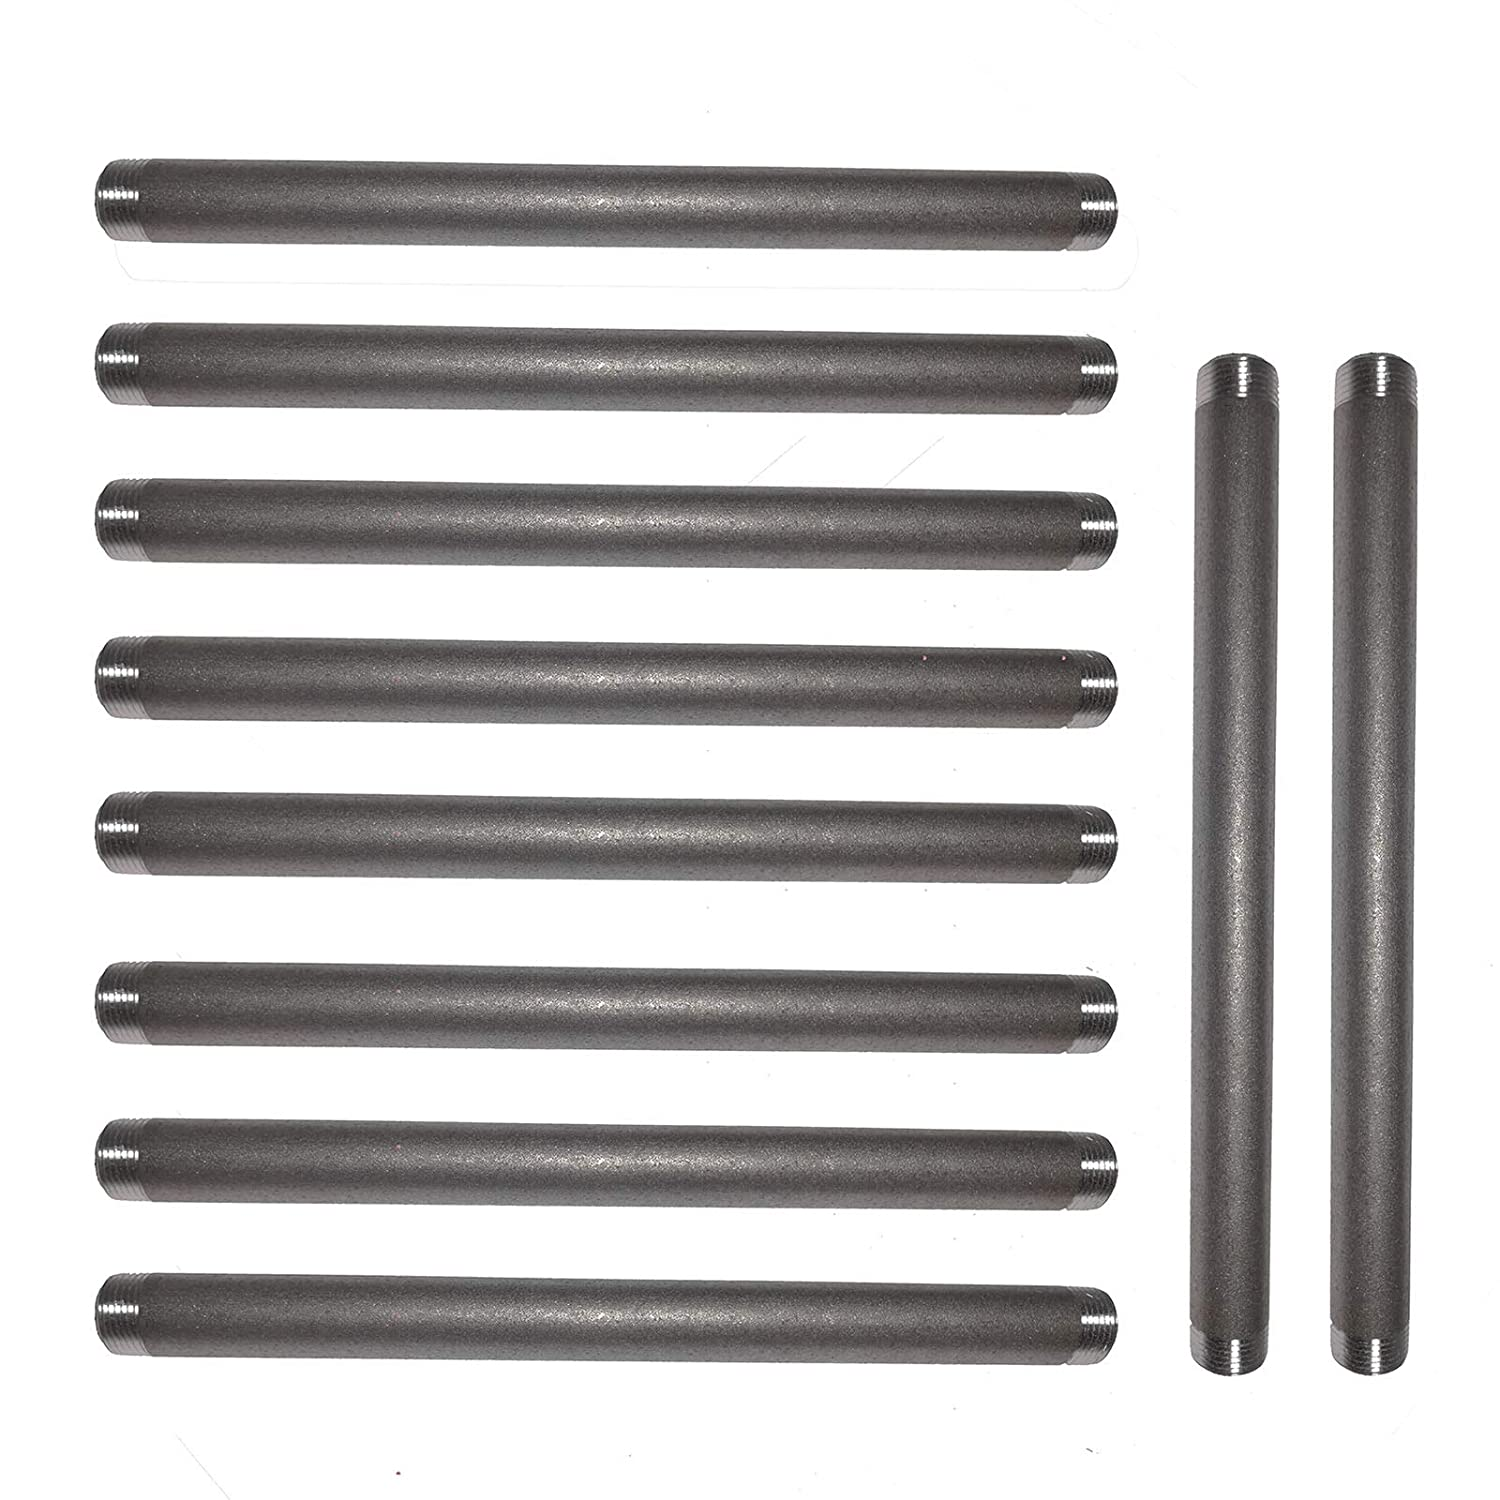 Malleable Cast Iron Pipe Nipples and Fittings,for DIY Vintage Furniture,10 Pack GPOWER 3//4 Inches x 12 Inches Black Pipe Nipples